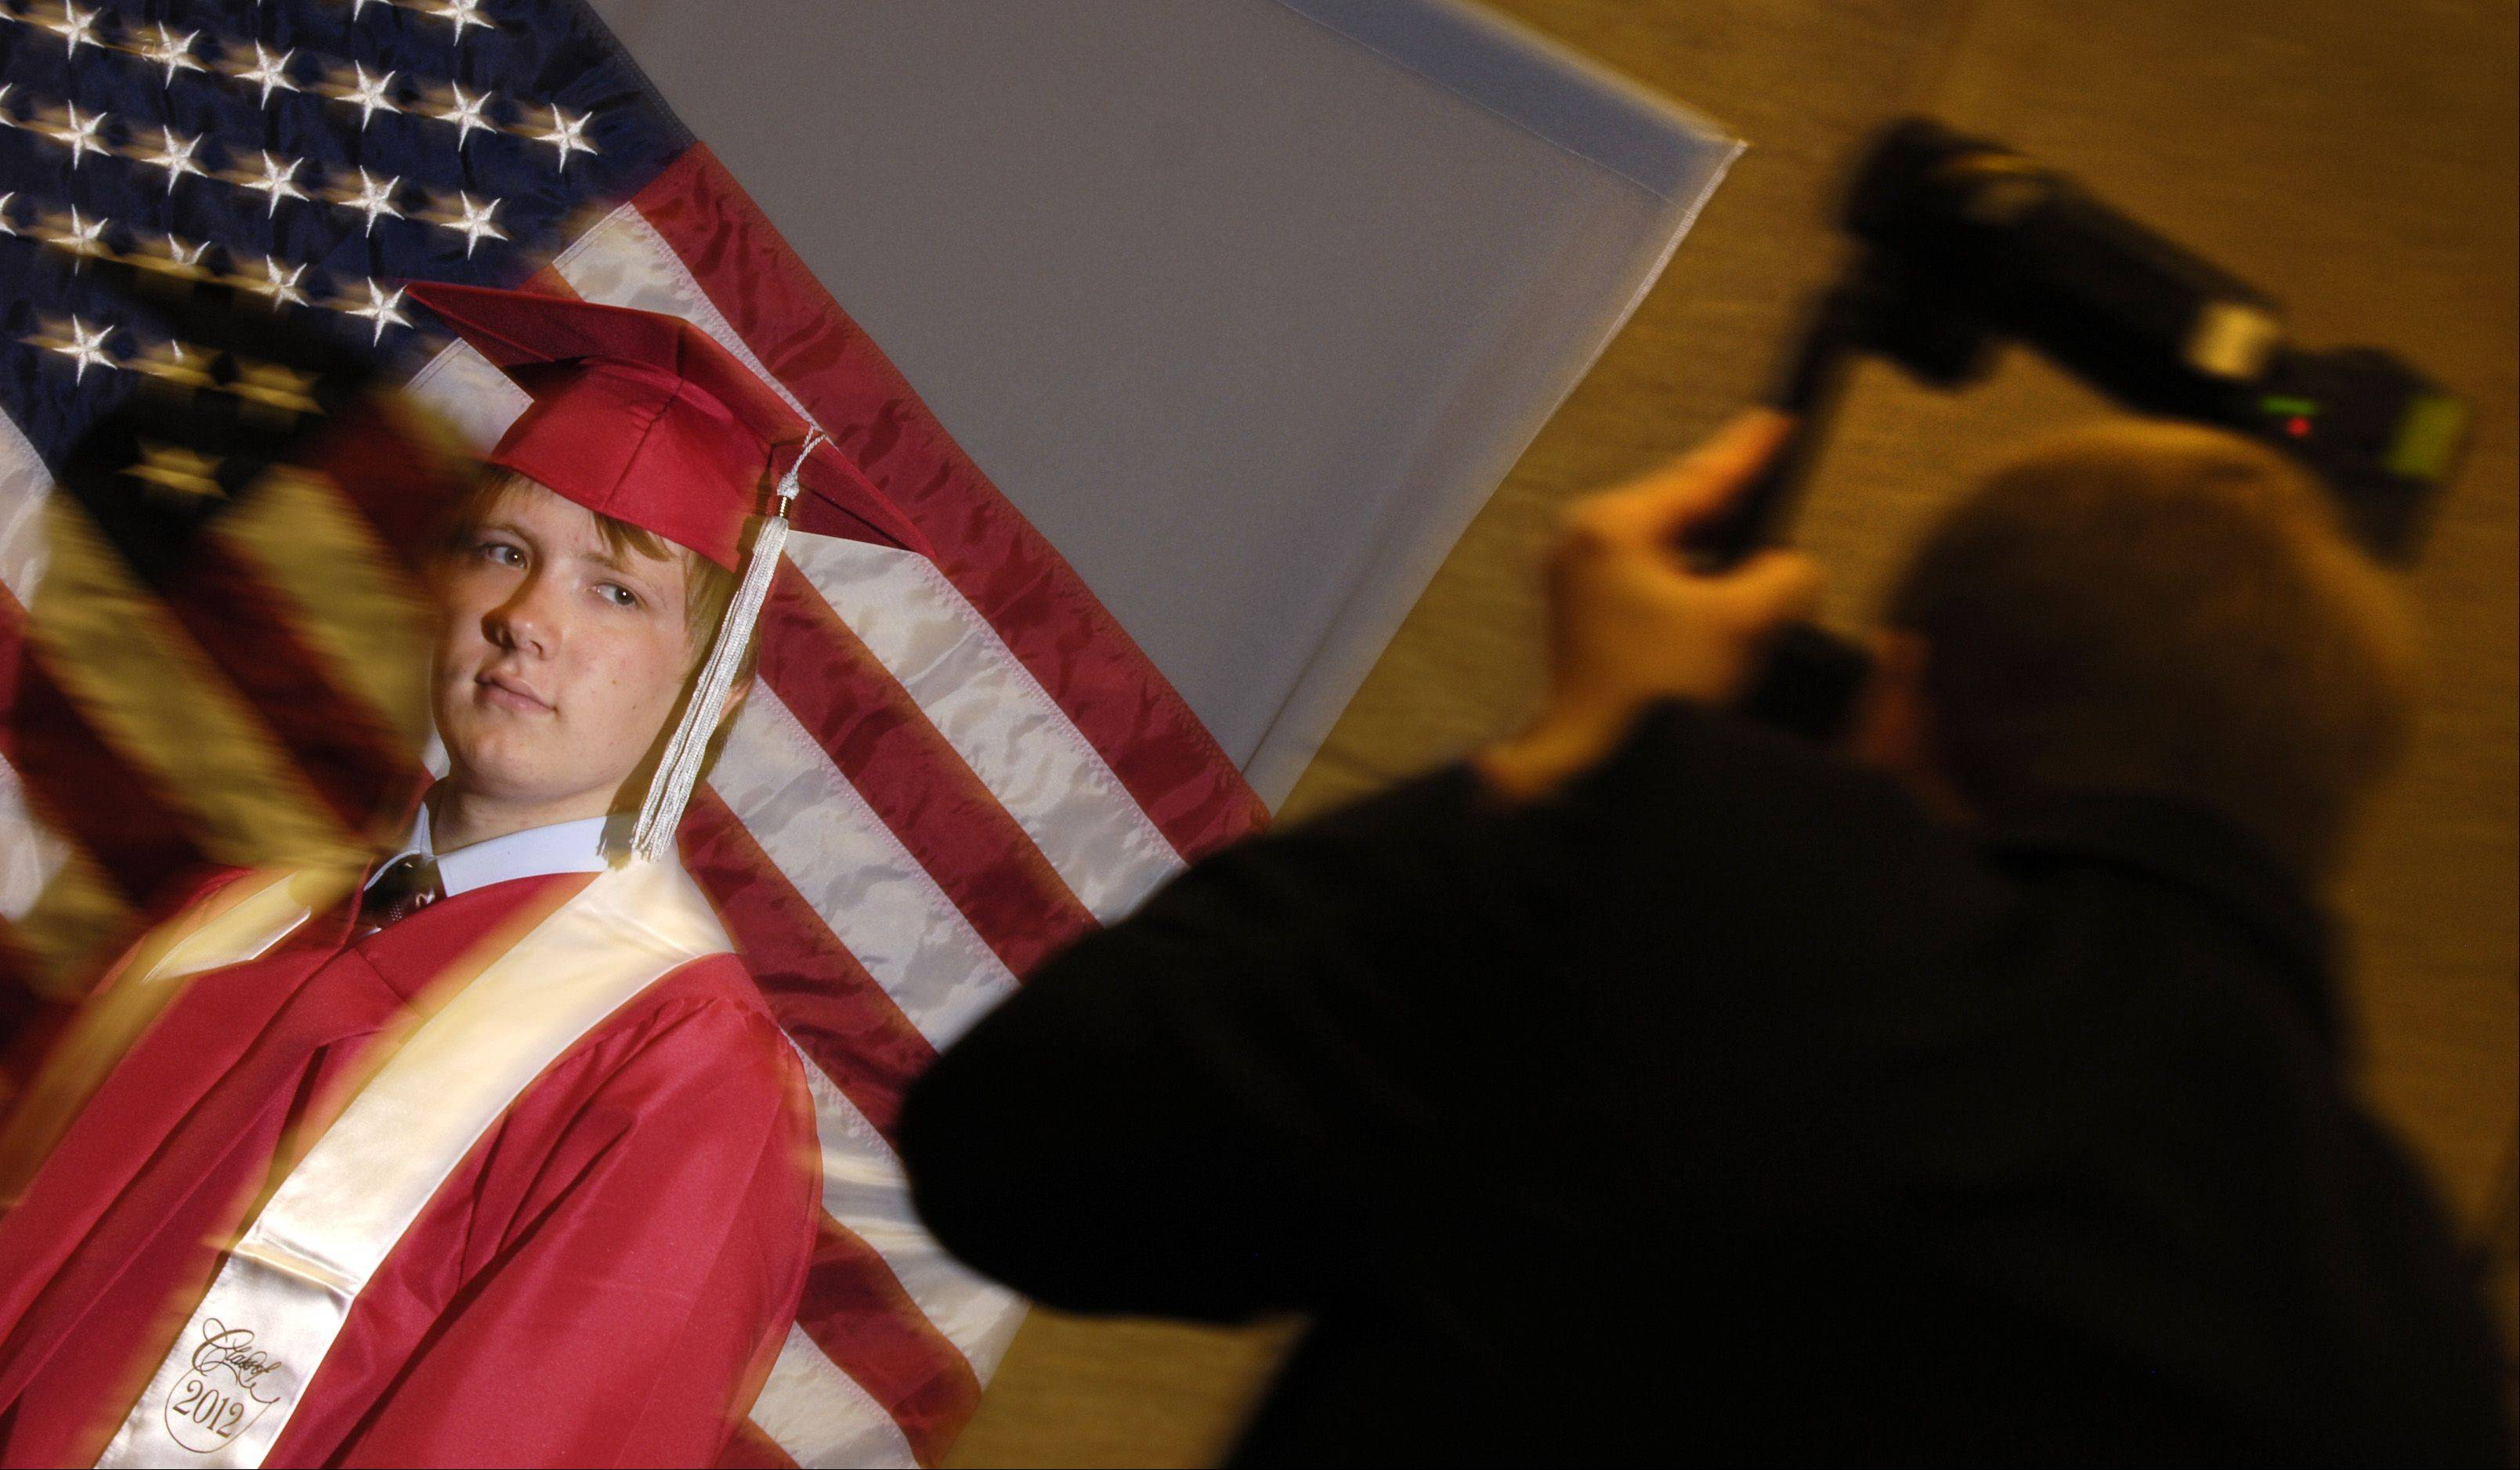 Raymond Ziecina has his photograph taken during the Glenbard East High School graduation ceremony, Sunday June 3 at the College of DuPage in Glen Ellyn.